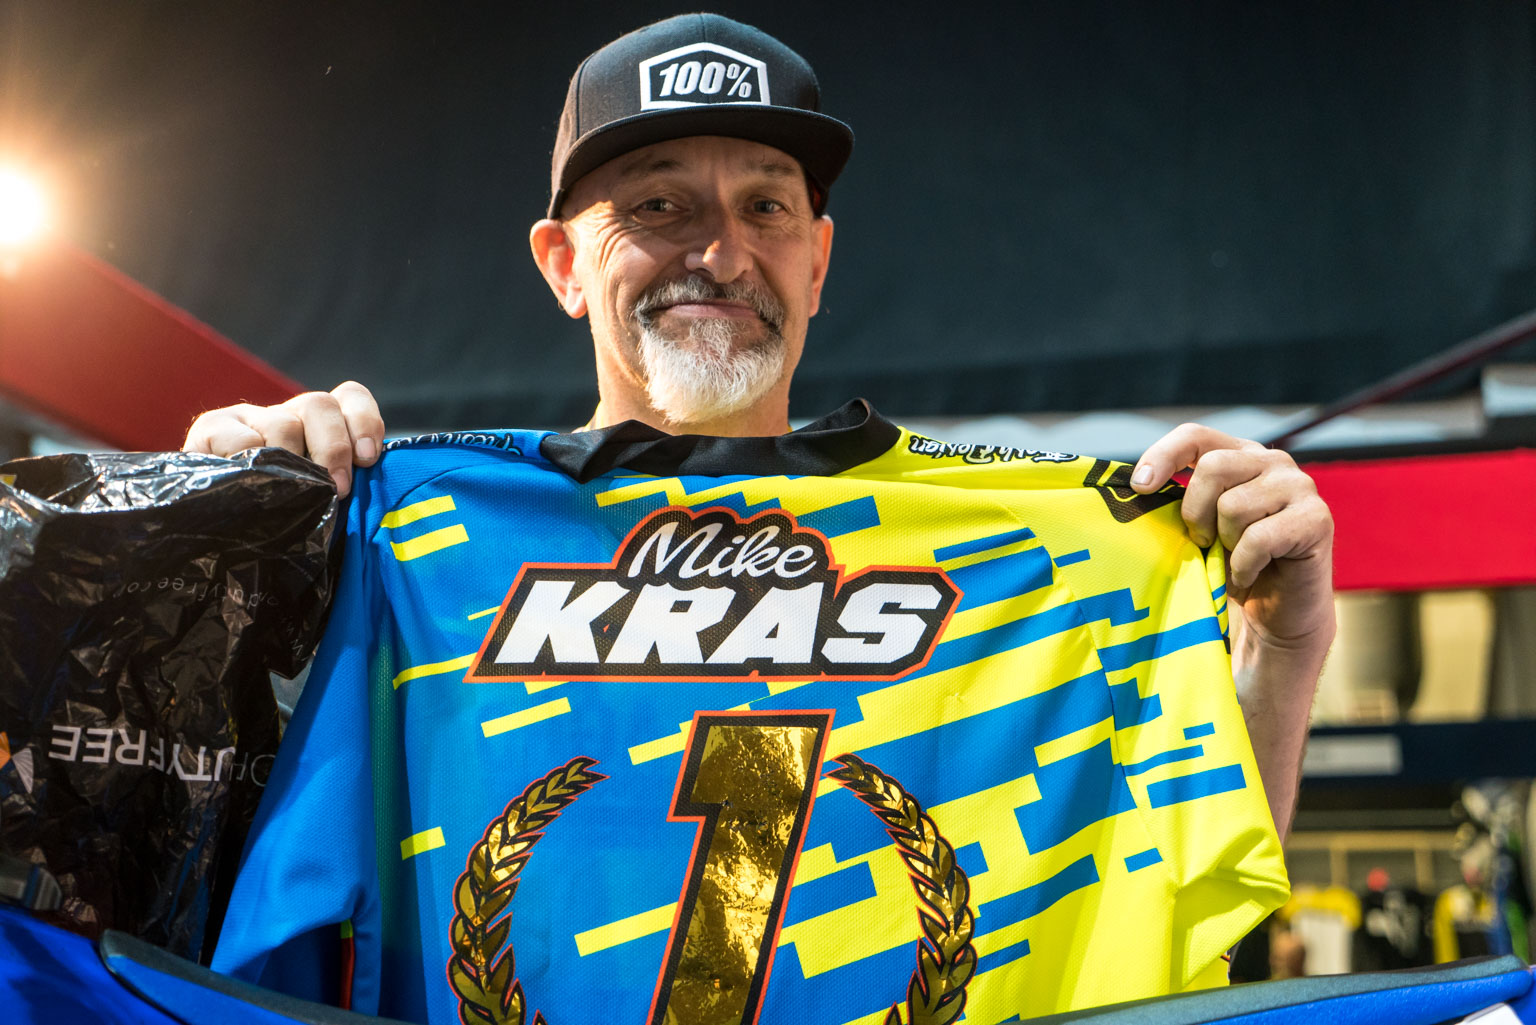 Bpb Buchanan has signed up EMX300 champ Mike Kras